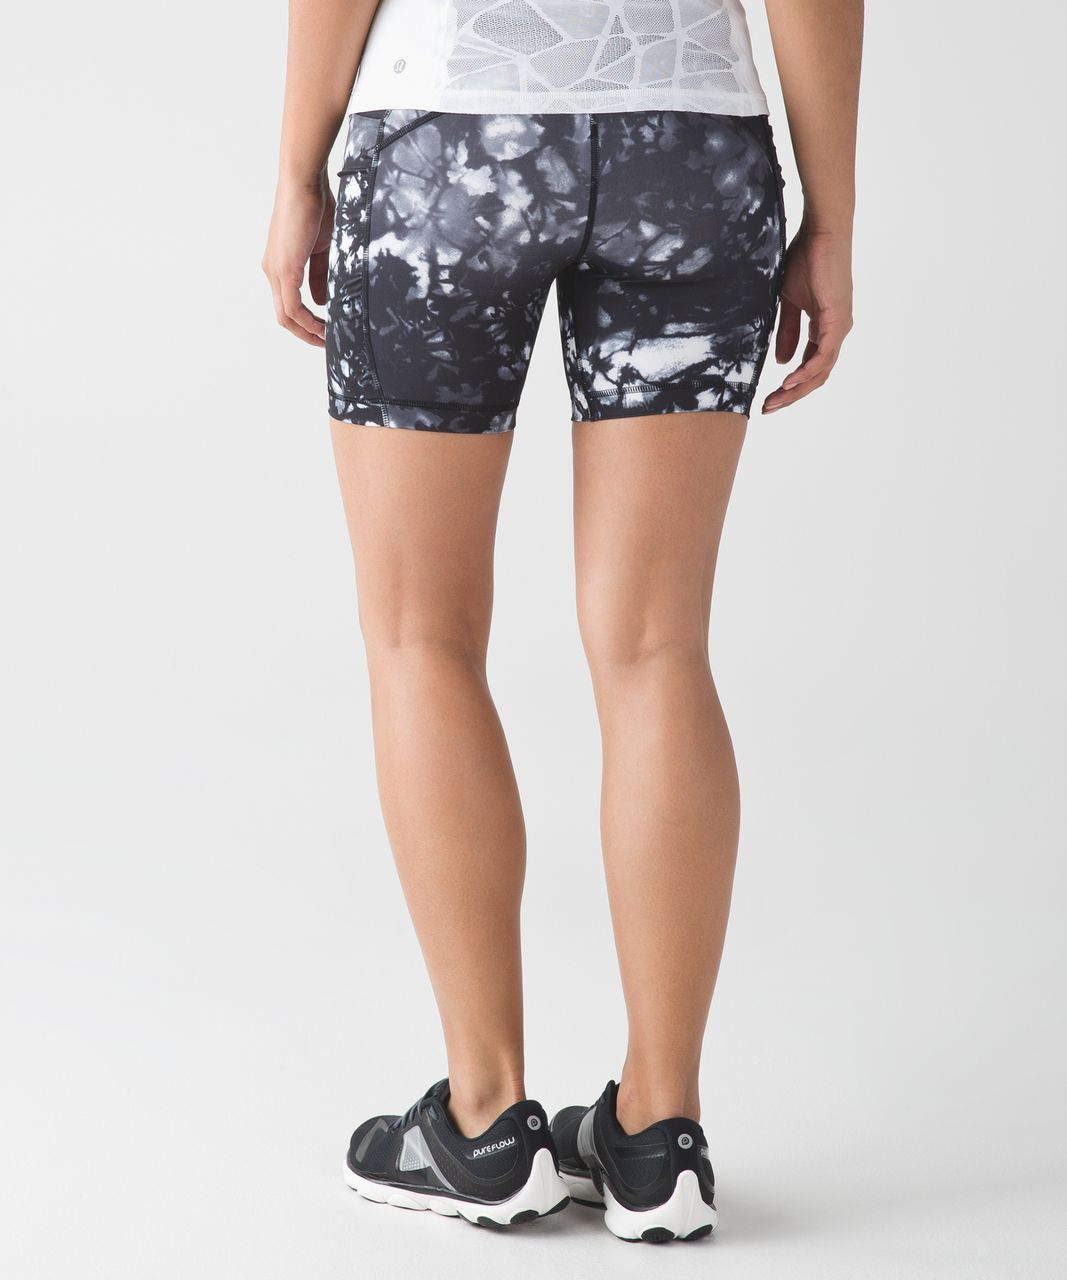 Lululemon Speed Track Short - Dusk Dye White Black